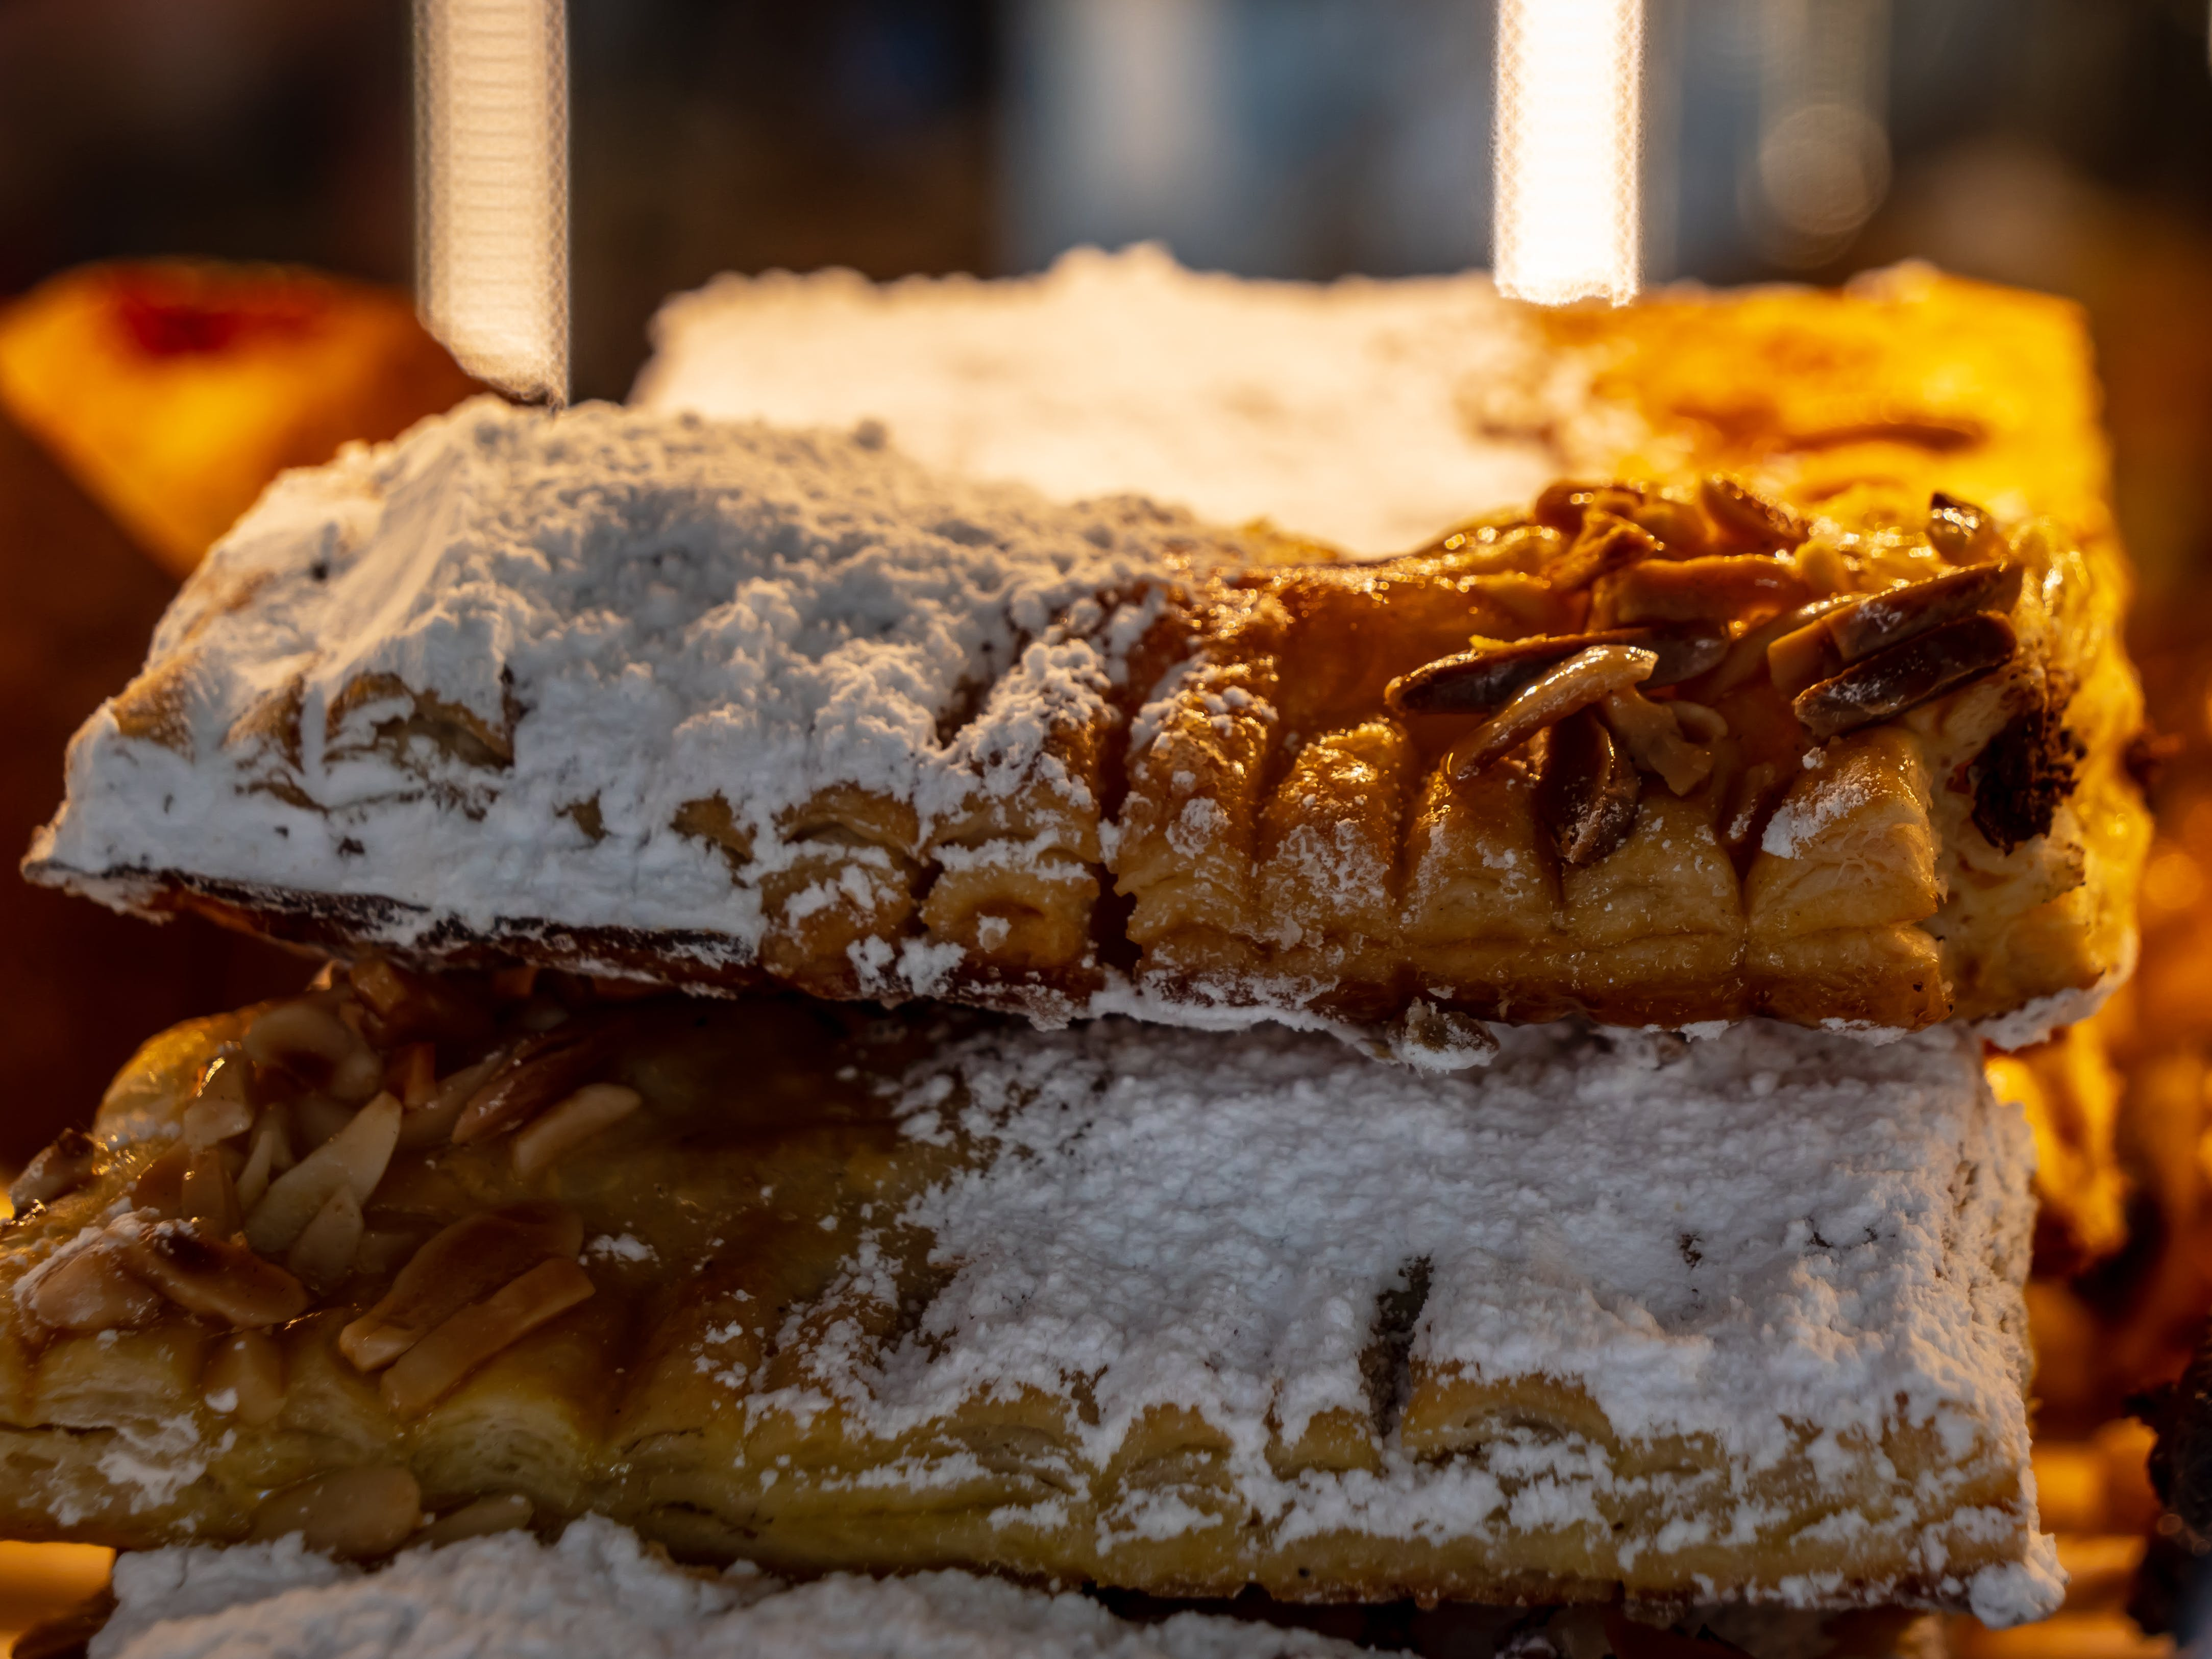 Free stock photo of dessert, pastry, street food, sweets